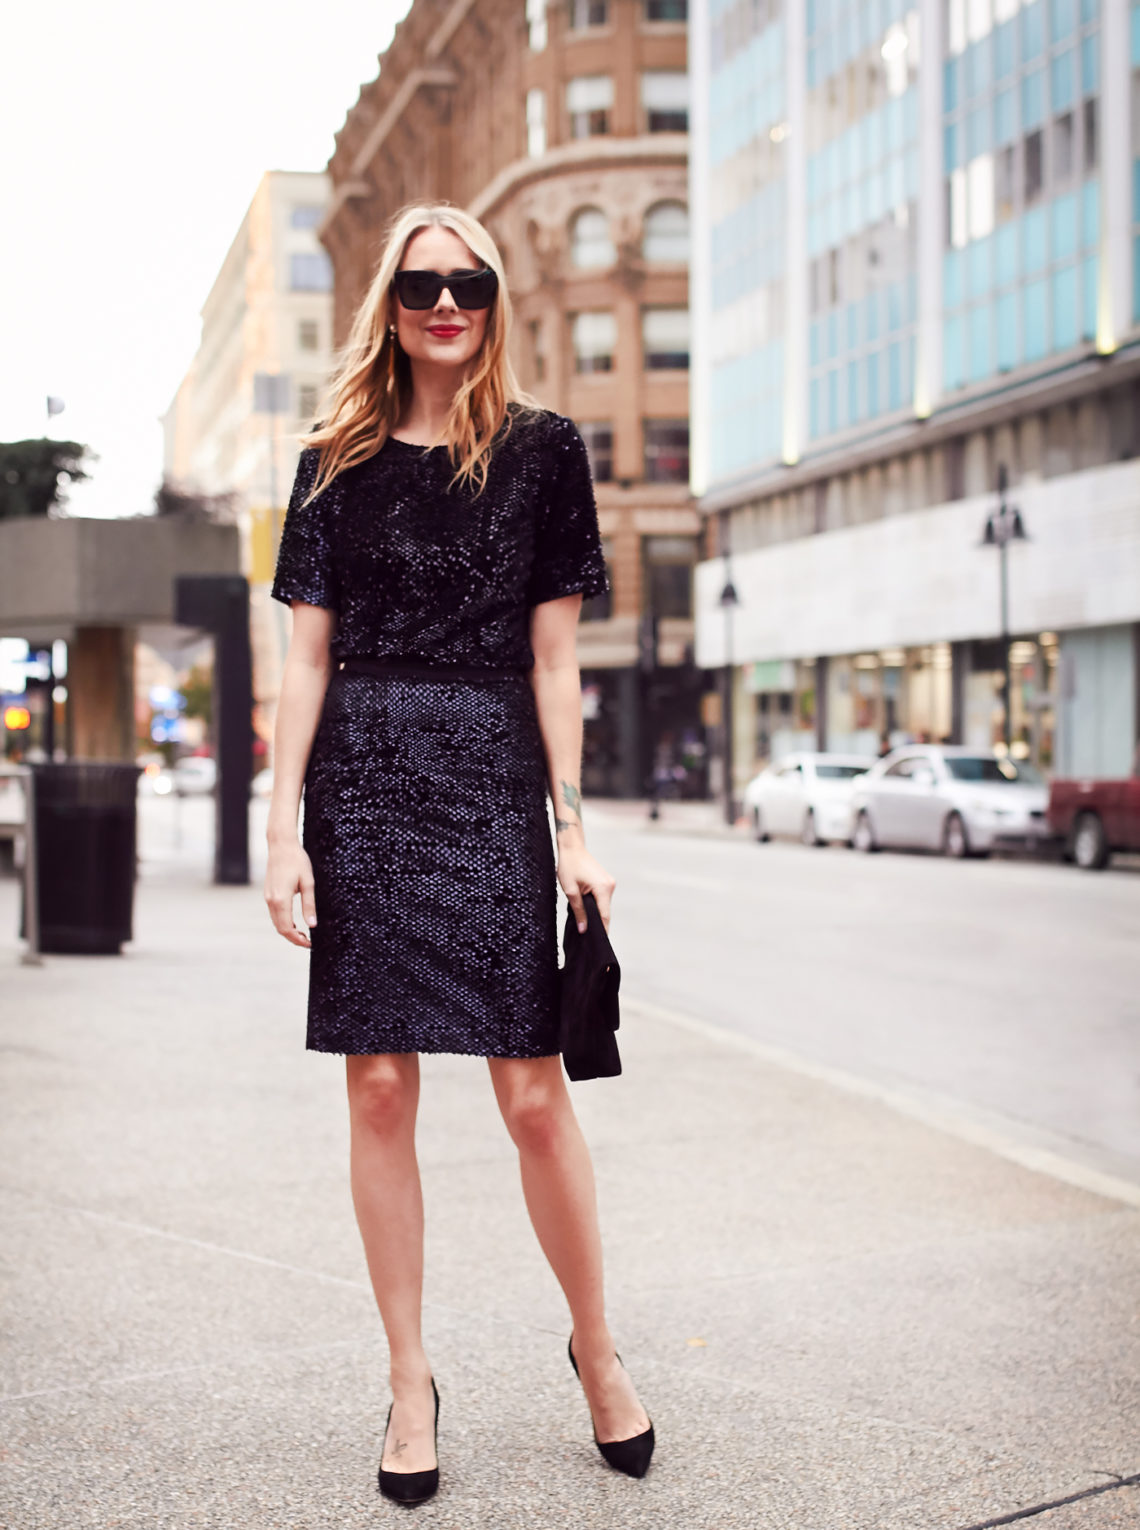 Holiday Outfit, Party Dressing, Sequin Top, Sequin Pencil Skirt, Black Pumps, Black Velvet Clutch, Red Lipstick